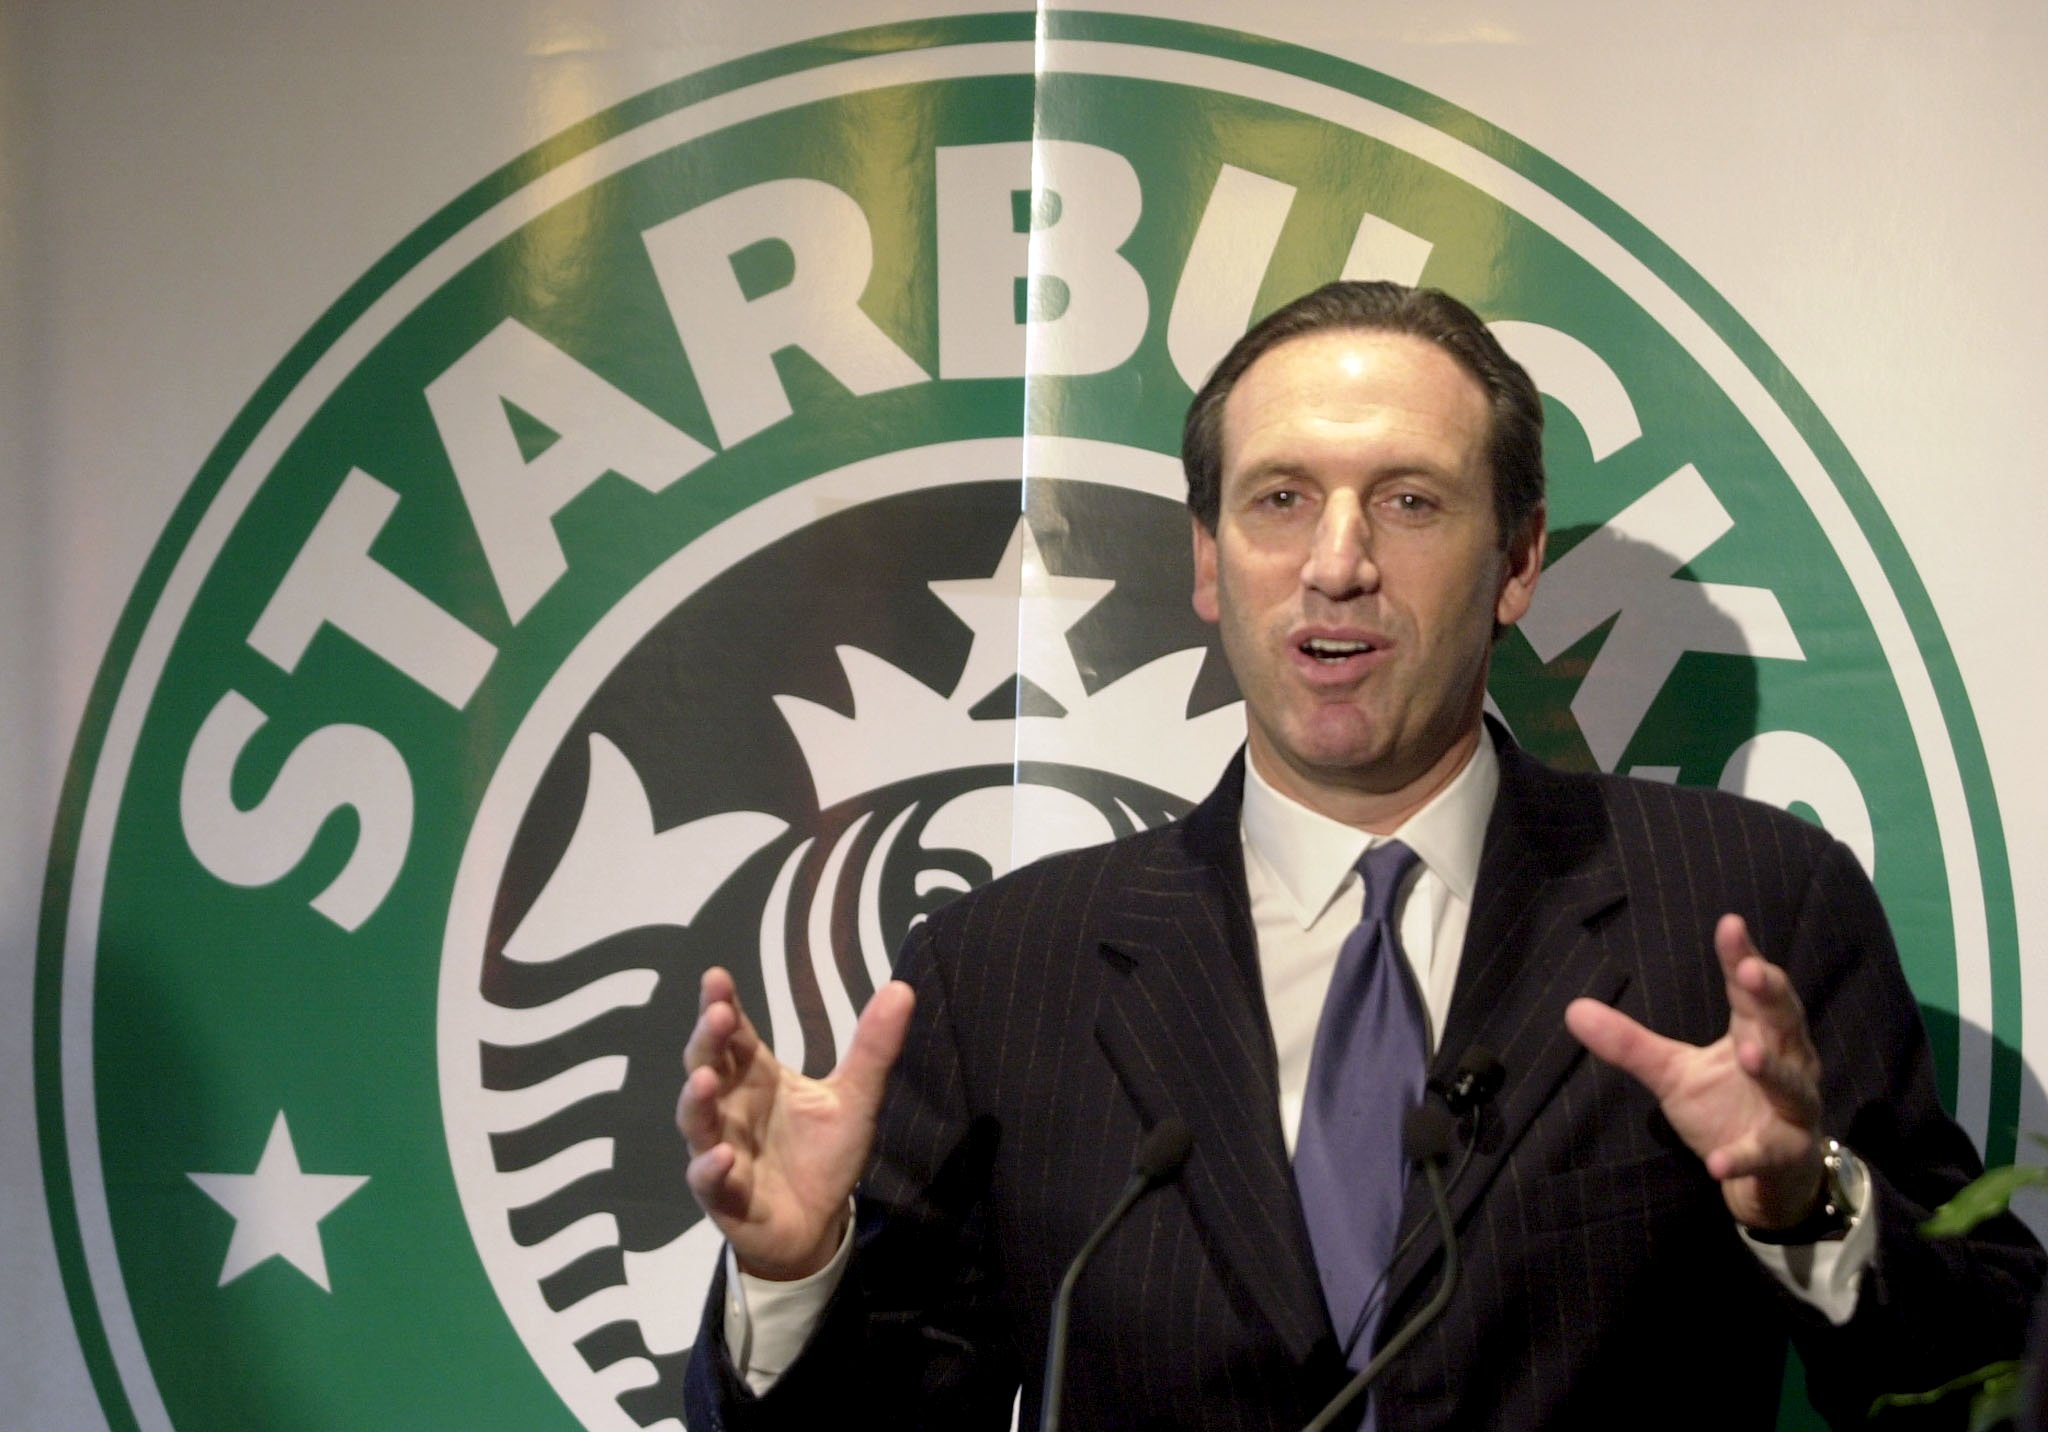 howard schultz leadership style essay Pastors and leadership - research warren buffett leadership style a 15 page paper this essay and it discusses howard schultz and starbucks in terms of.